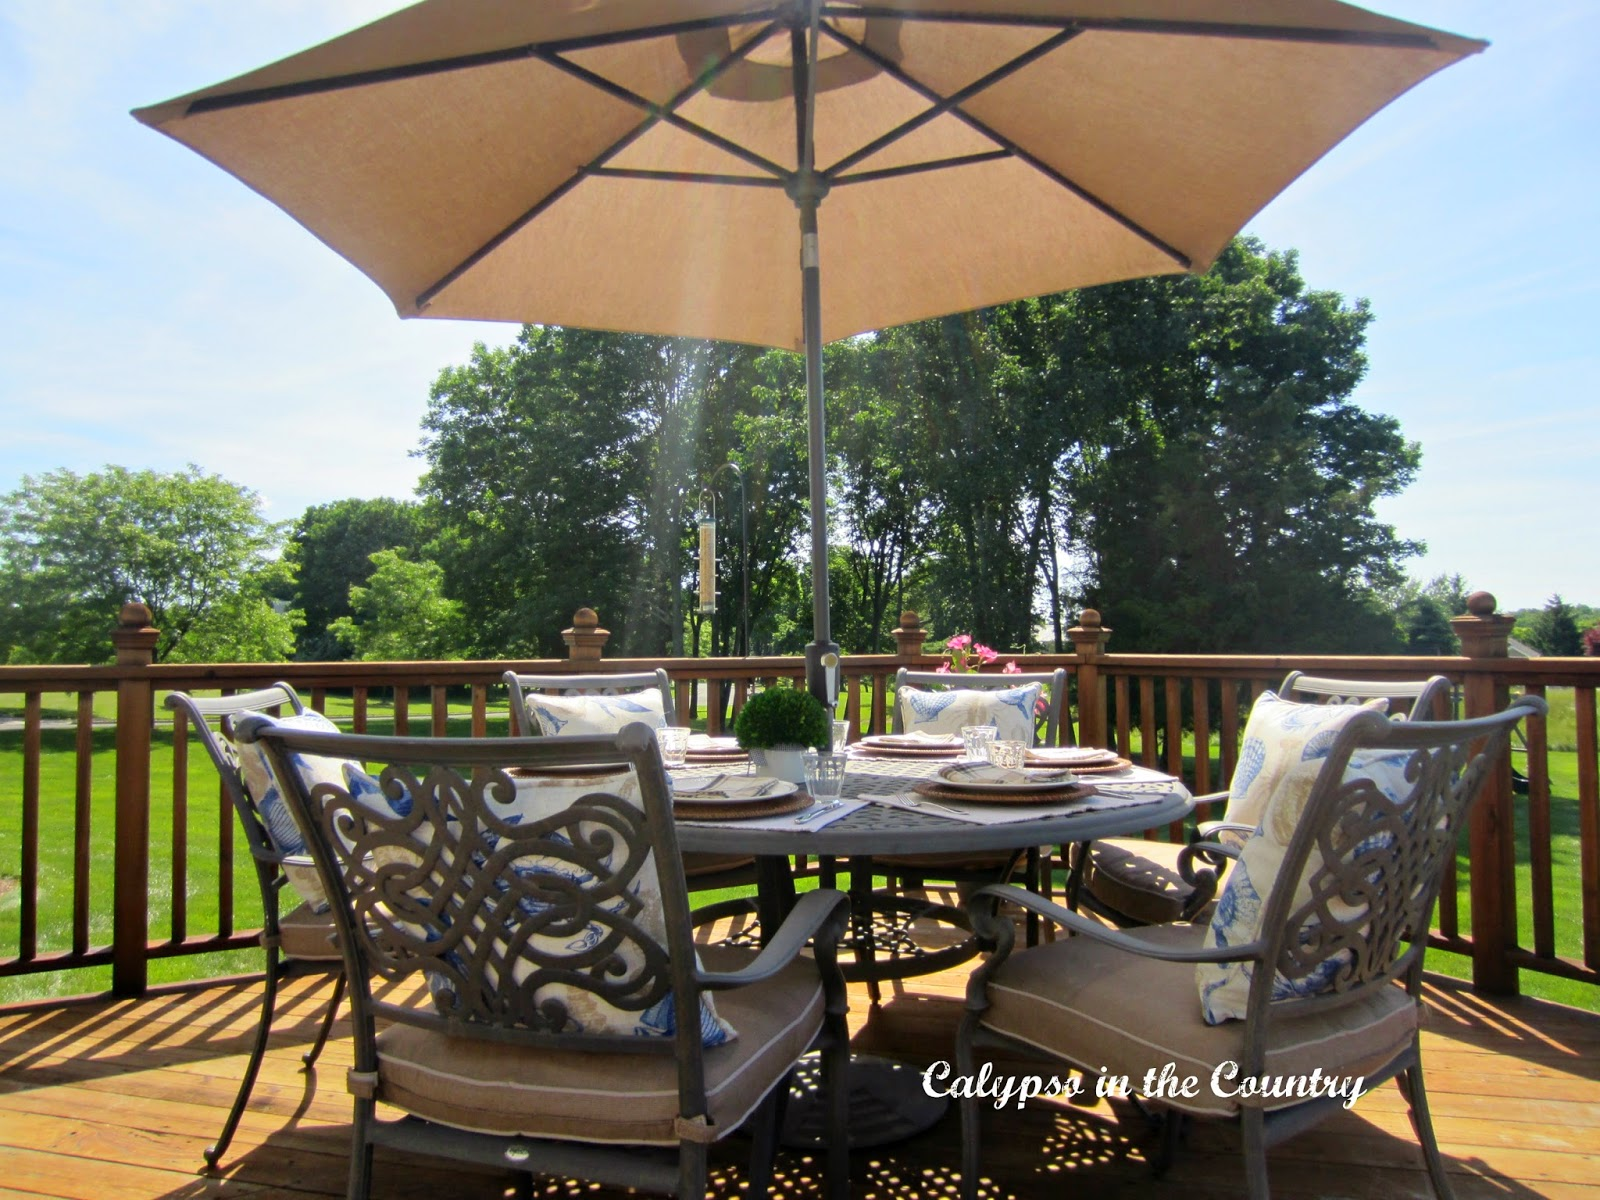 Patio furniture and umbrella - outdoor table setting ideas